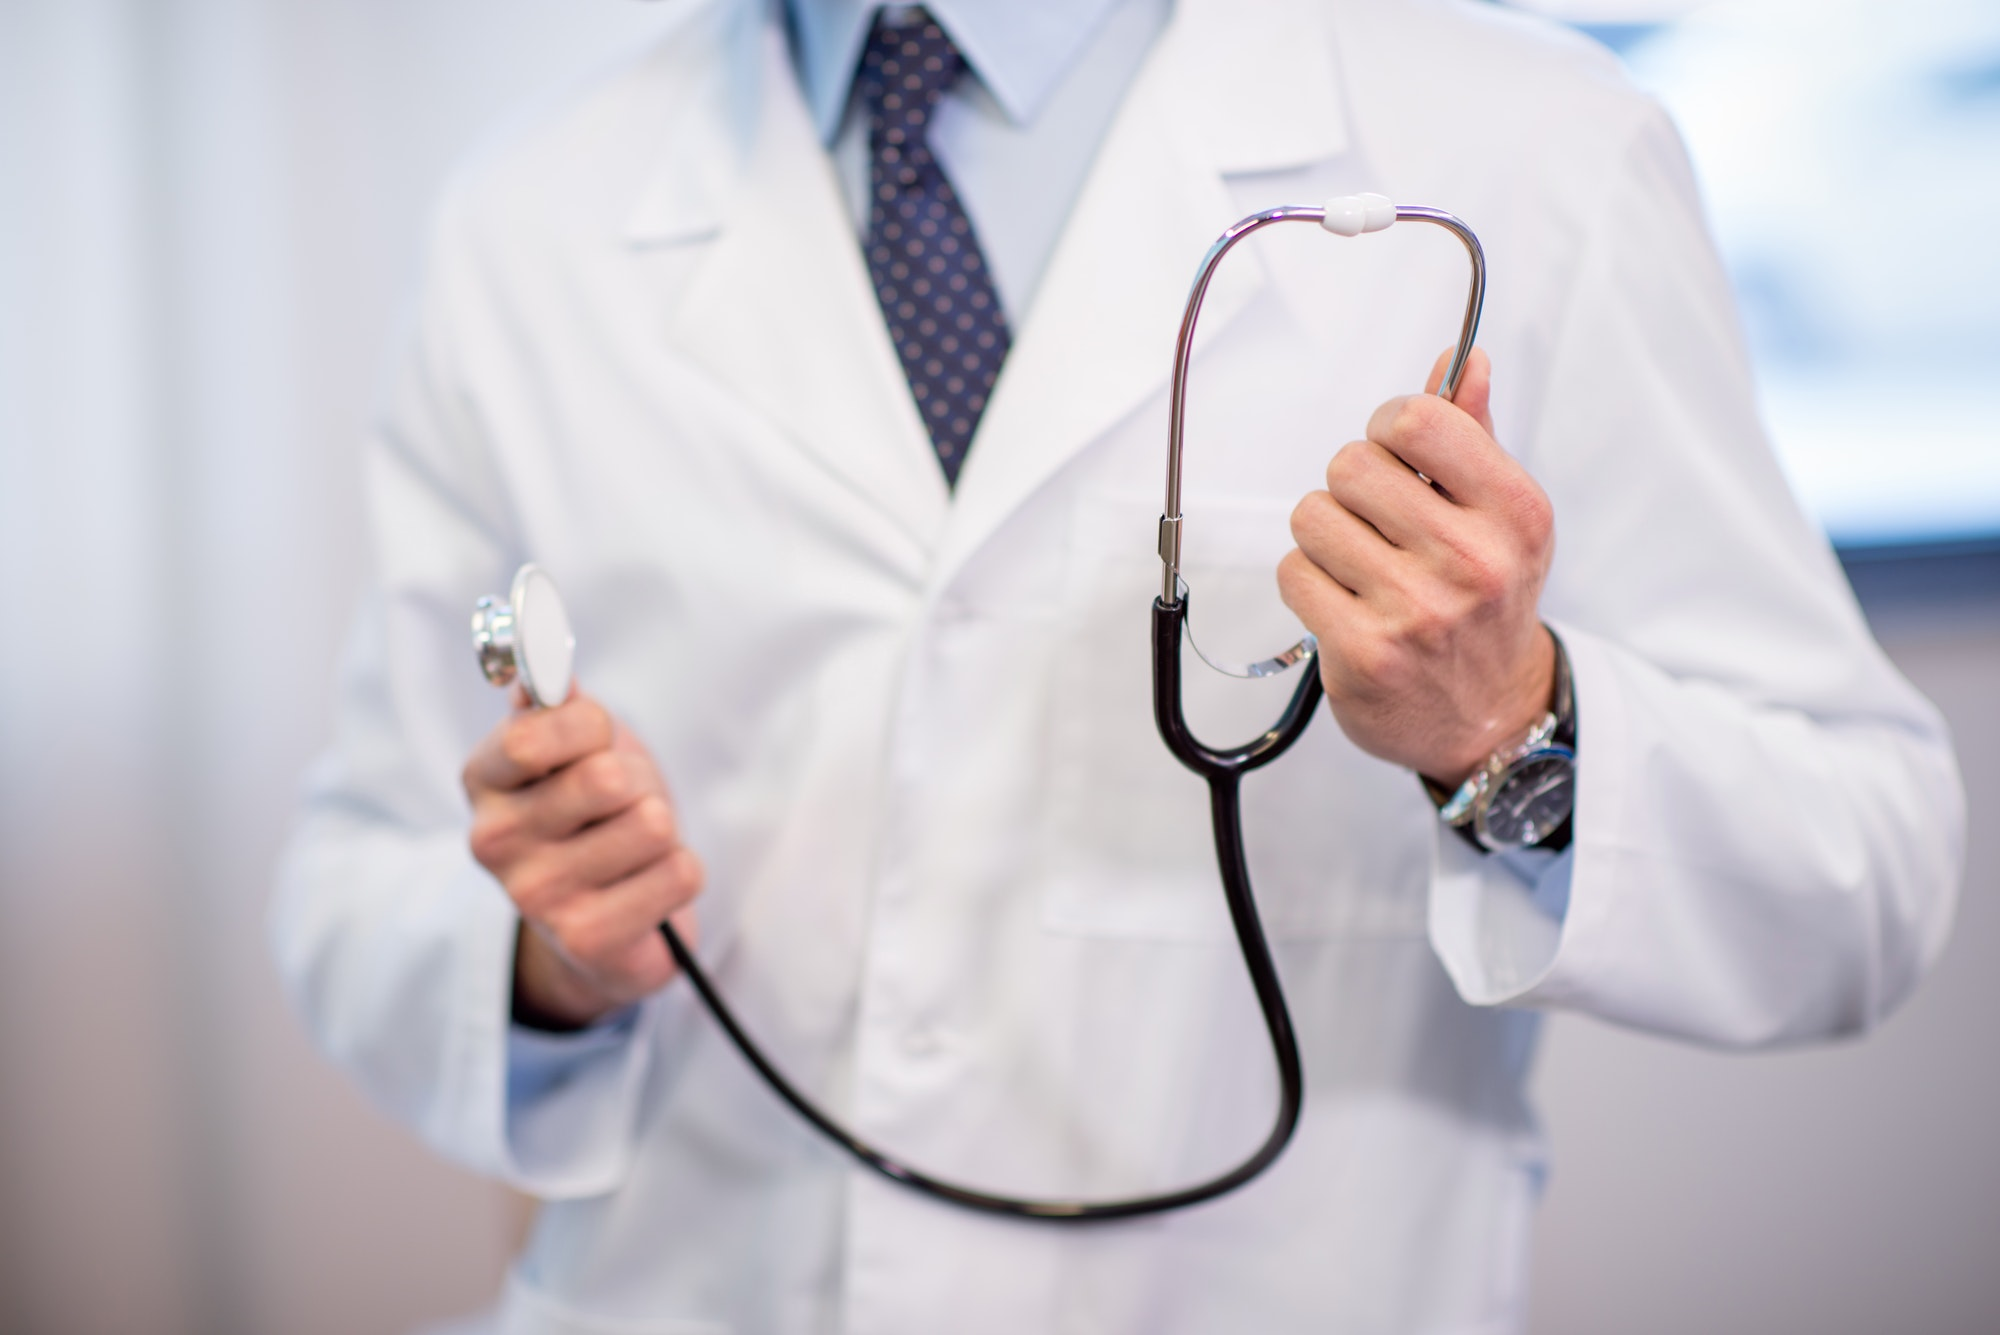 Close-up partial view of male doctor holding stethoscope